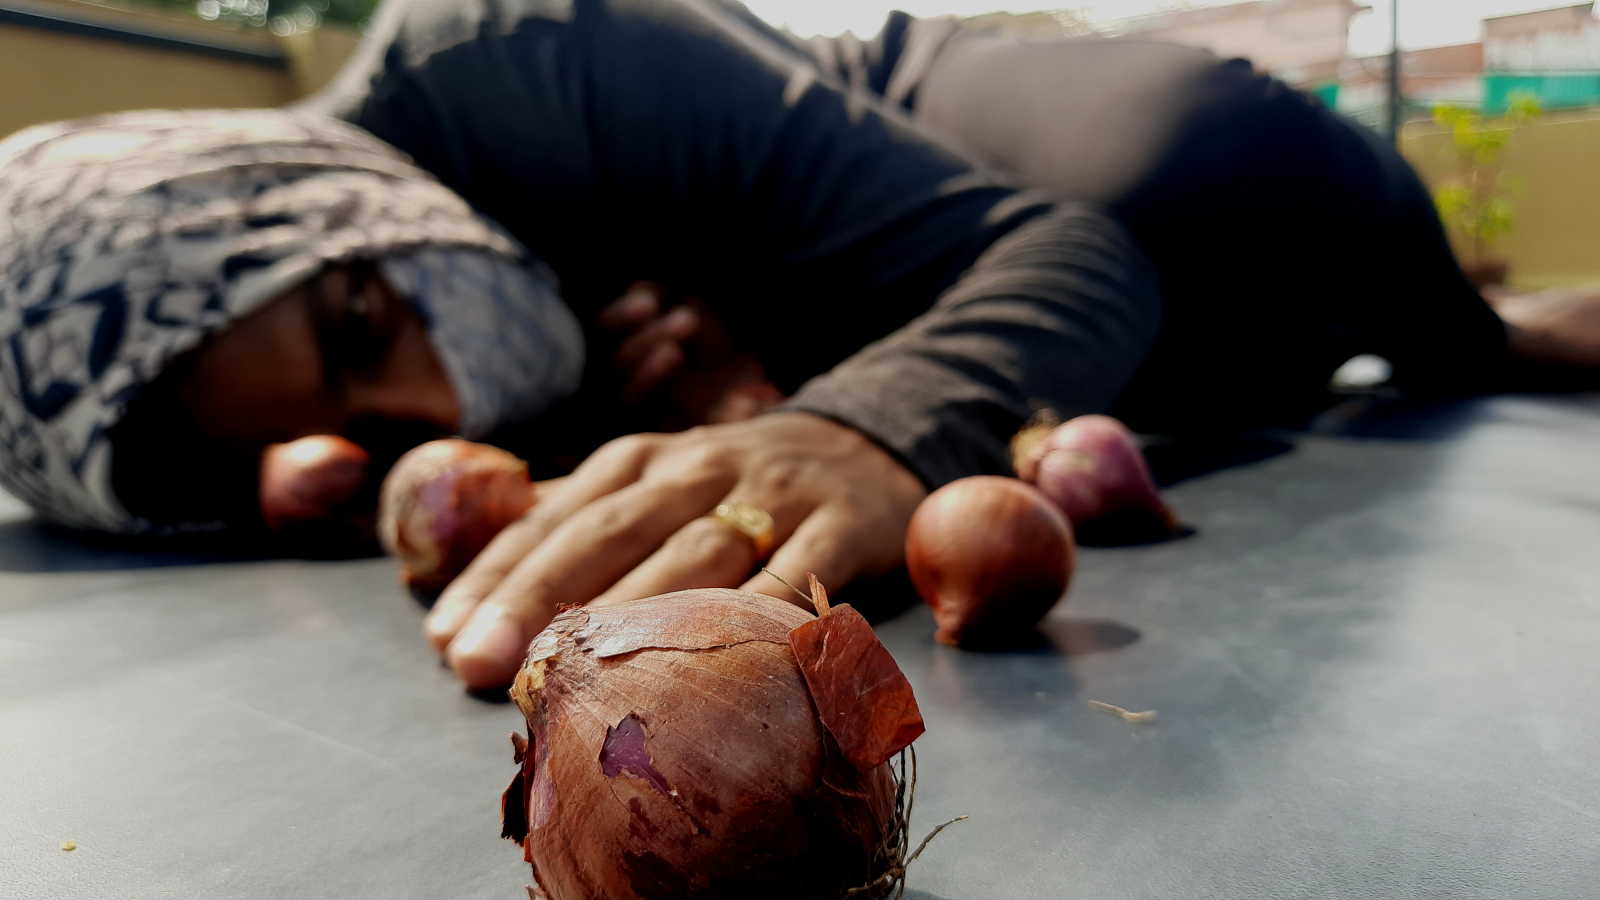 Onions: An abstract piece about layers. Just like onions have layers, this piece is a representation from the dancers' perspective of the layers of experience and exposure that moulds and makes a person.